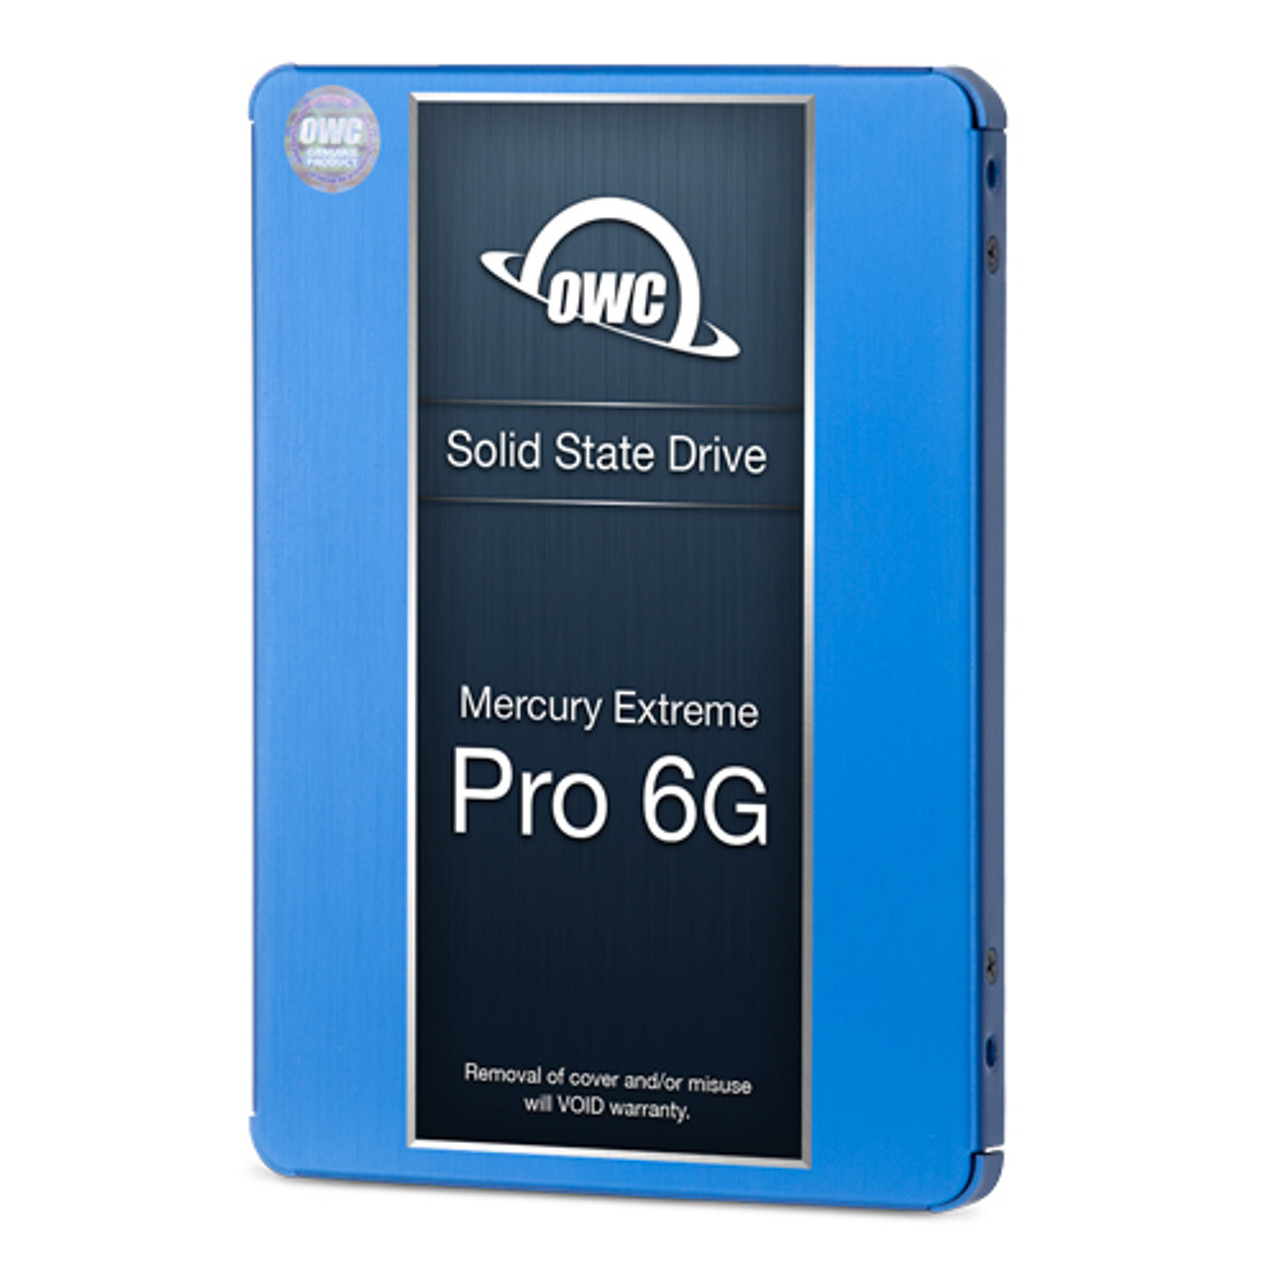 2TB OWC Mercury Extreme 6G SSD - SSD Bay Add-In Kit for 2011 27-inch iMacs